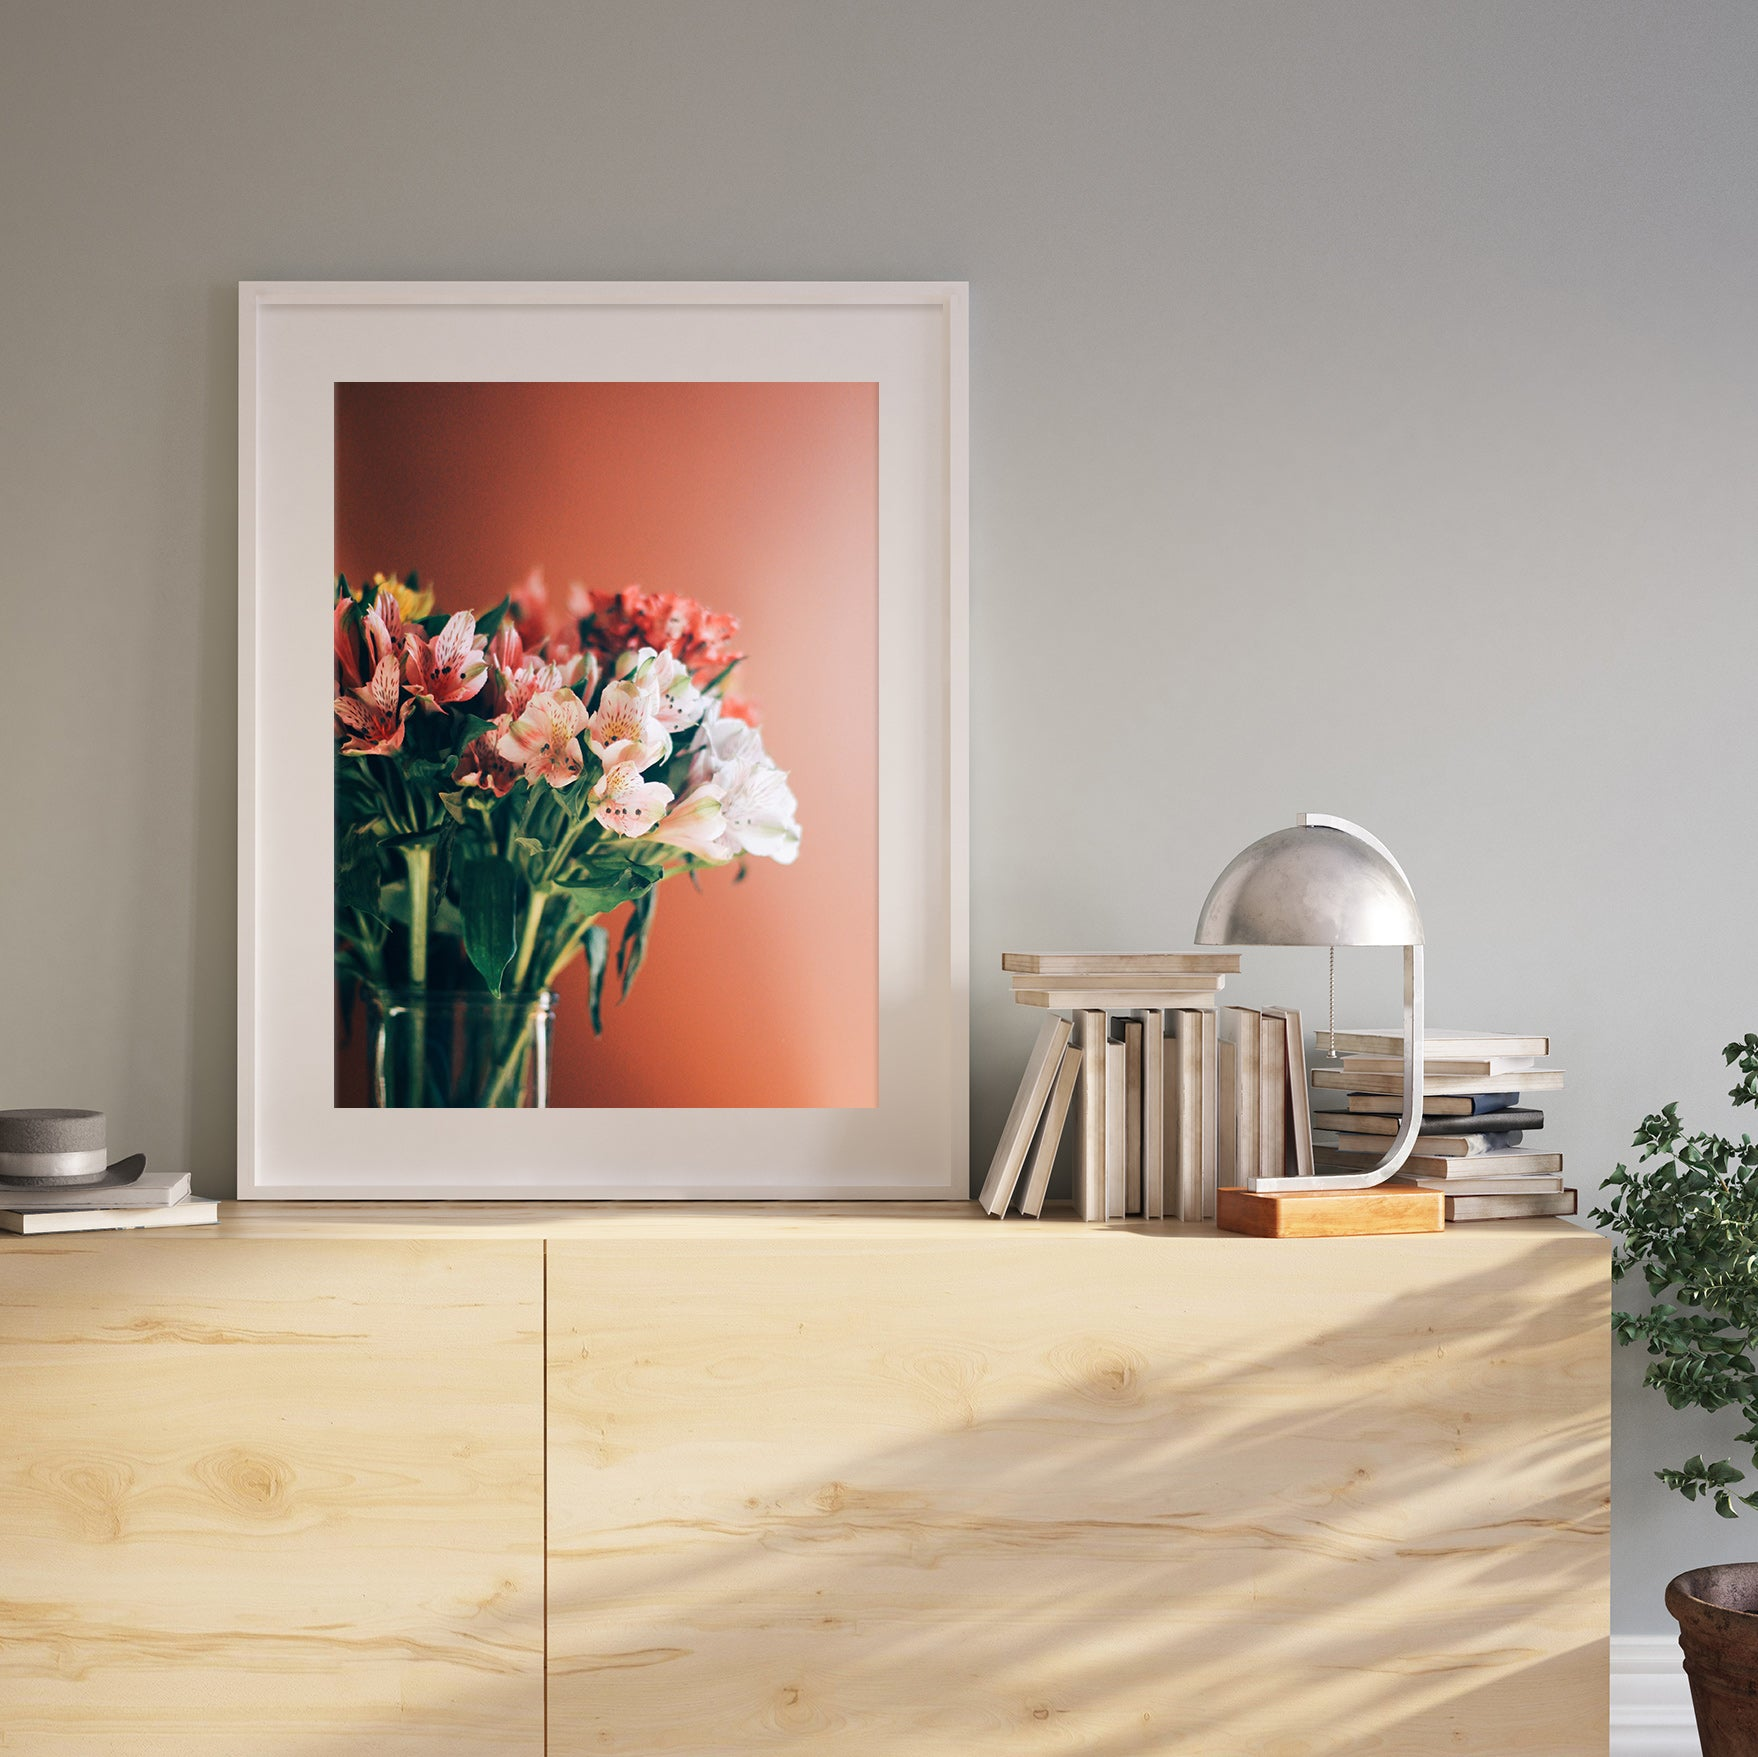 A Photo of a Vase of Flowers Printed and Framed by Posterjack